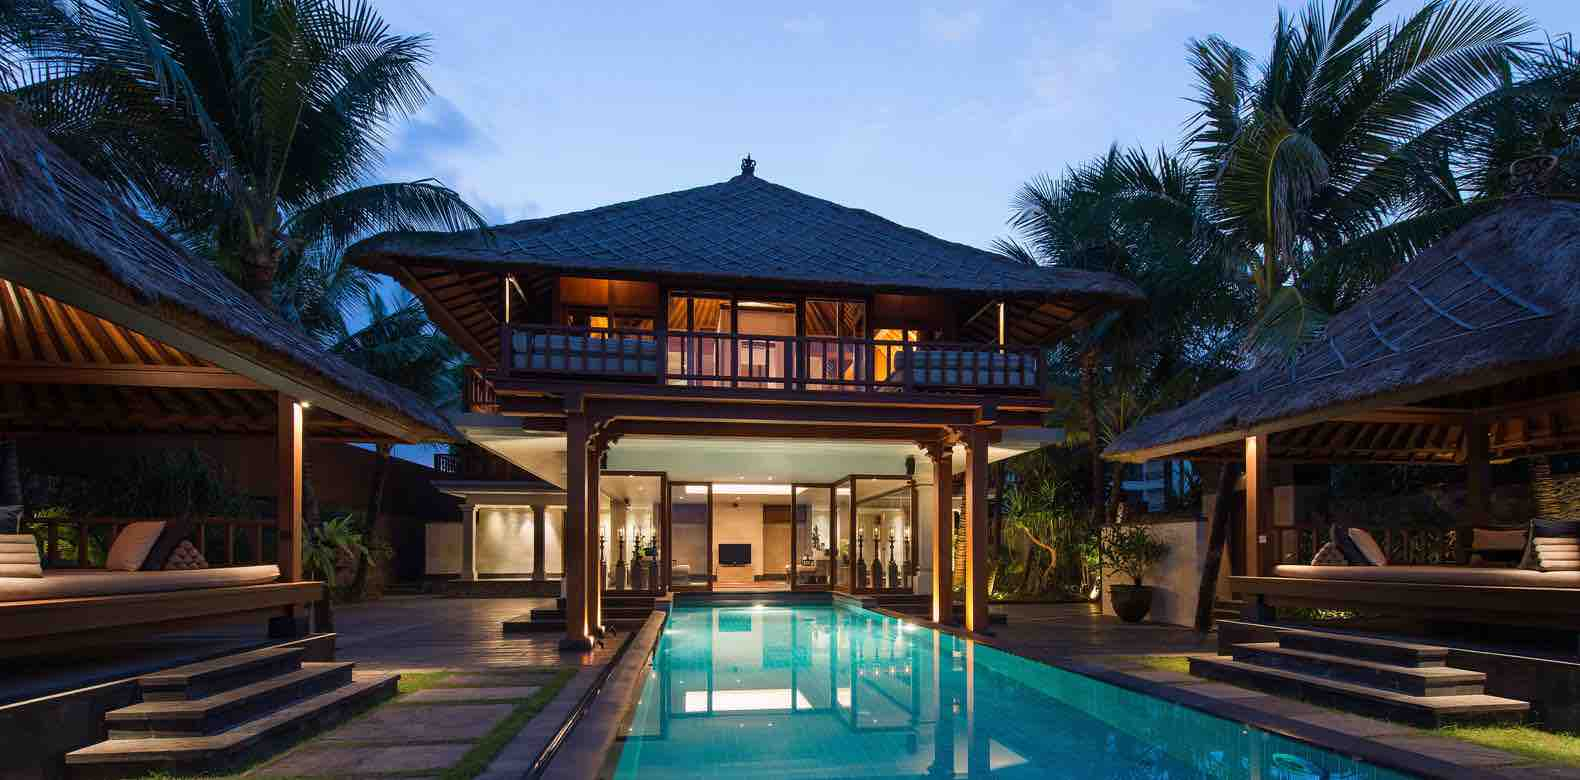 Top 25 hotels in indonesia easy planet travel for Hotels in legian bali